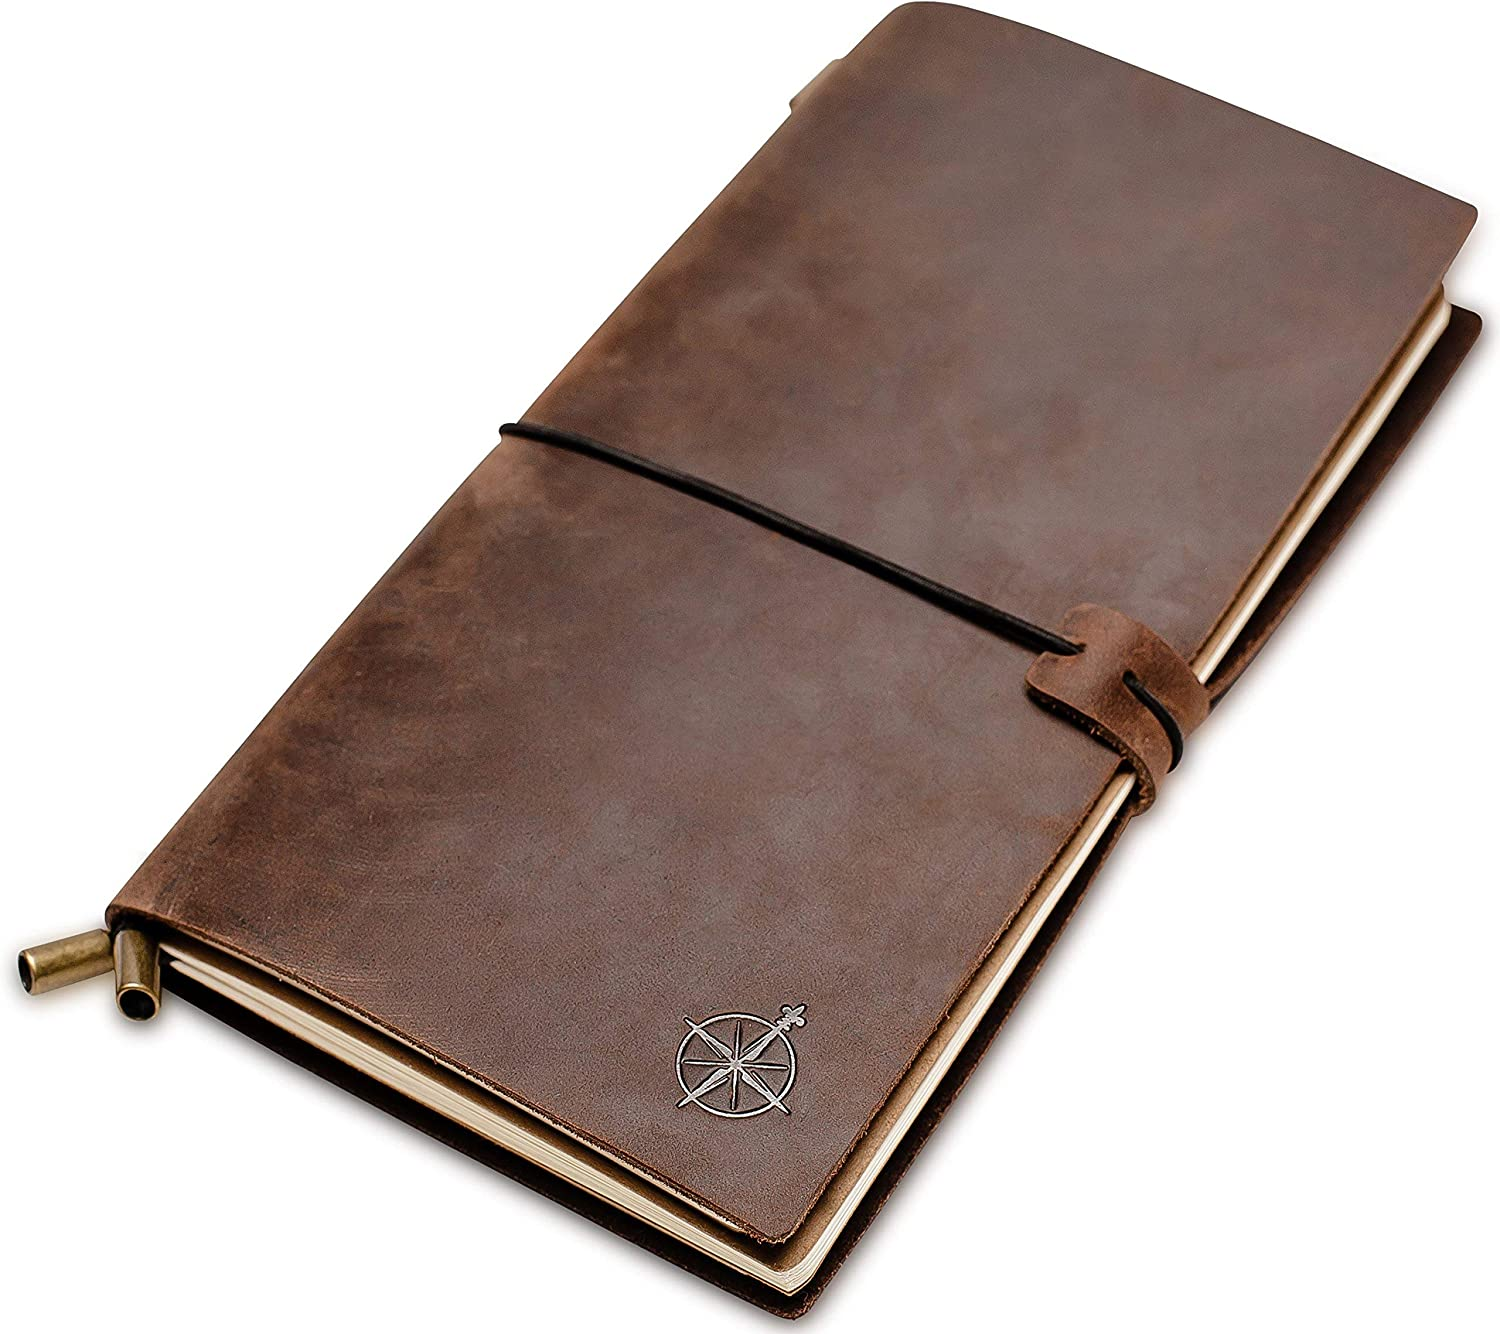 """Lined Leather Travel Journal - Wanderings Travelers Notebook, Refillable - Perfect for Writing, Poetry, To Do Lists, Travelers, a Diary. Standard Size Lined Inserts - 8.5""""x4.5"""""""